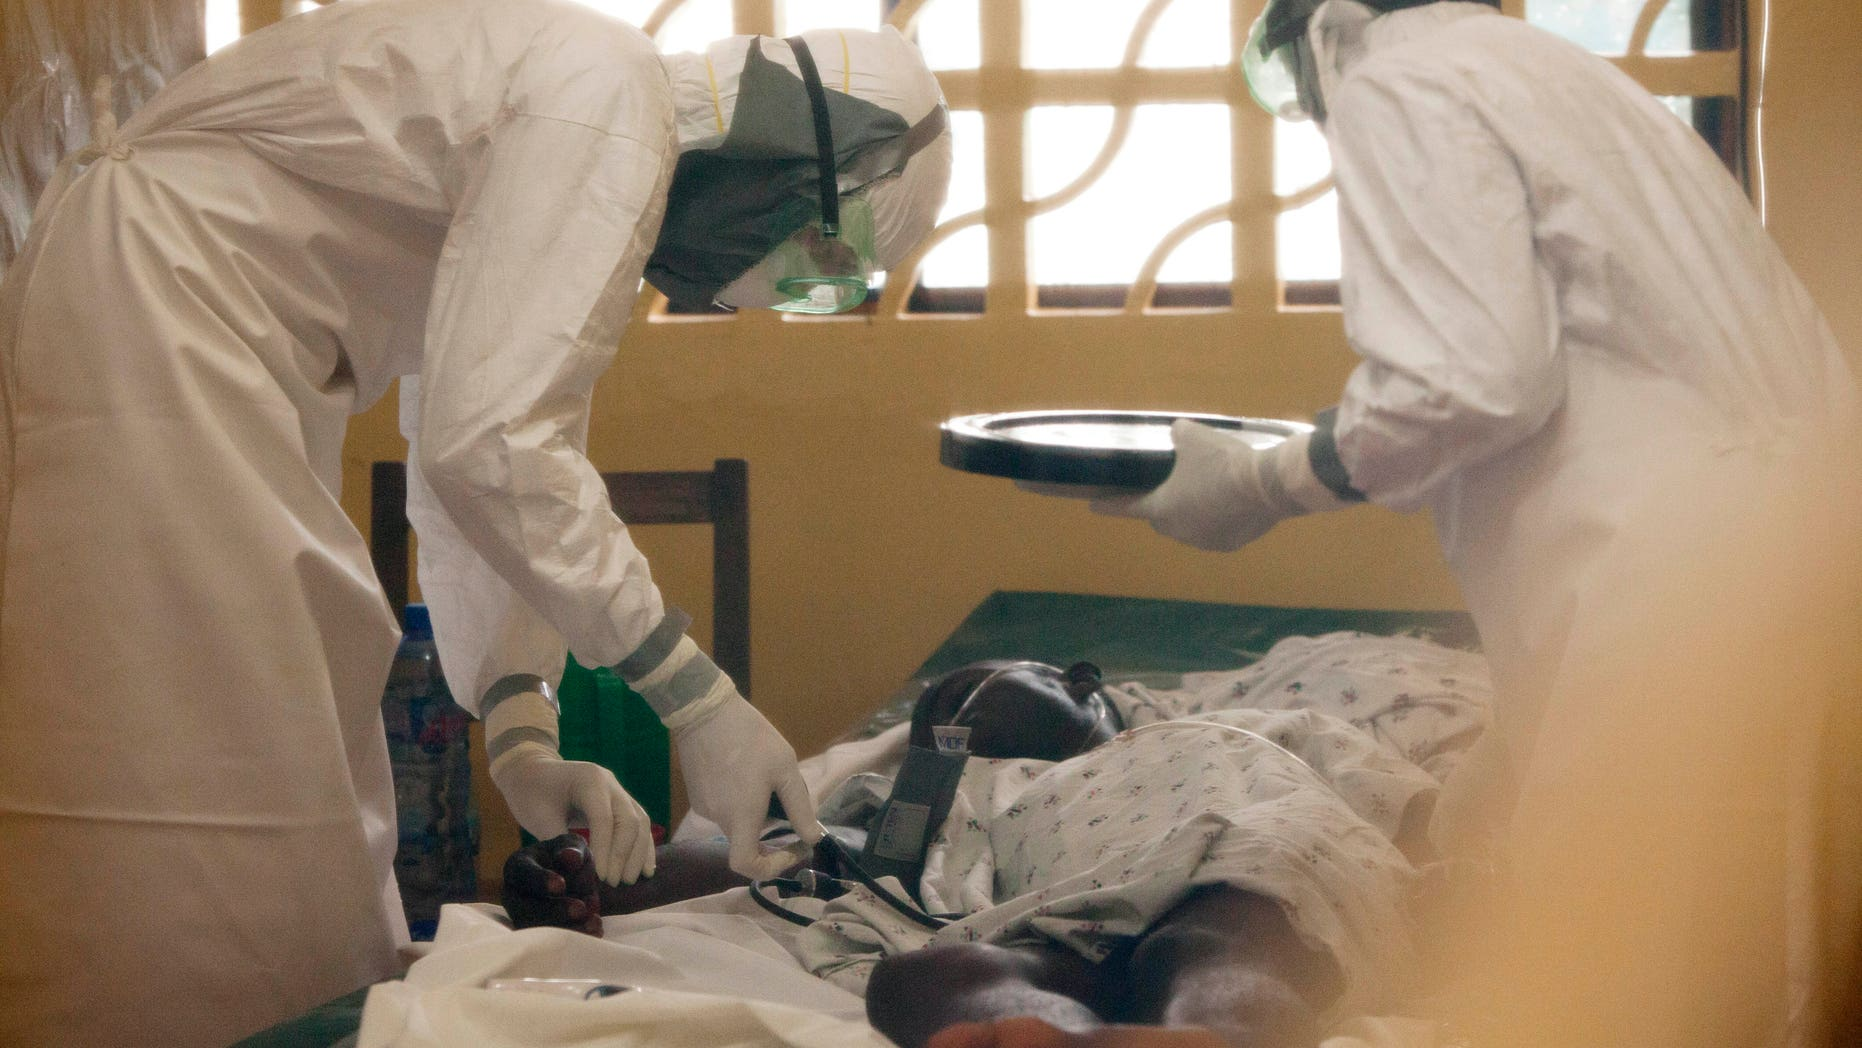 In this 2014 photo provided by the Samaritan's Purse aid organization, Dr. Kent Brantly, left, treats an Ebola patient at the Samaritan's Purse Ebola Case Management Center in Monrovia, Liberia. On Saturday, July 26, 2014, the North Carolina-based aid organization said Brantly tested positive for the disease and was being treated at a hospital in Monrovia. (AP Photo/Samaritan's Purse)